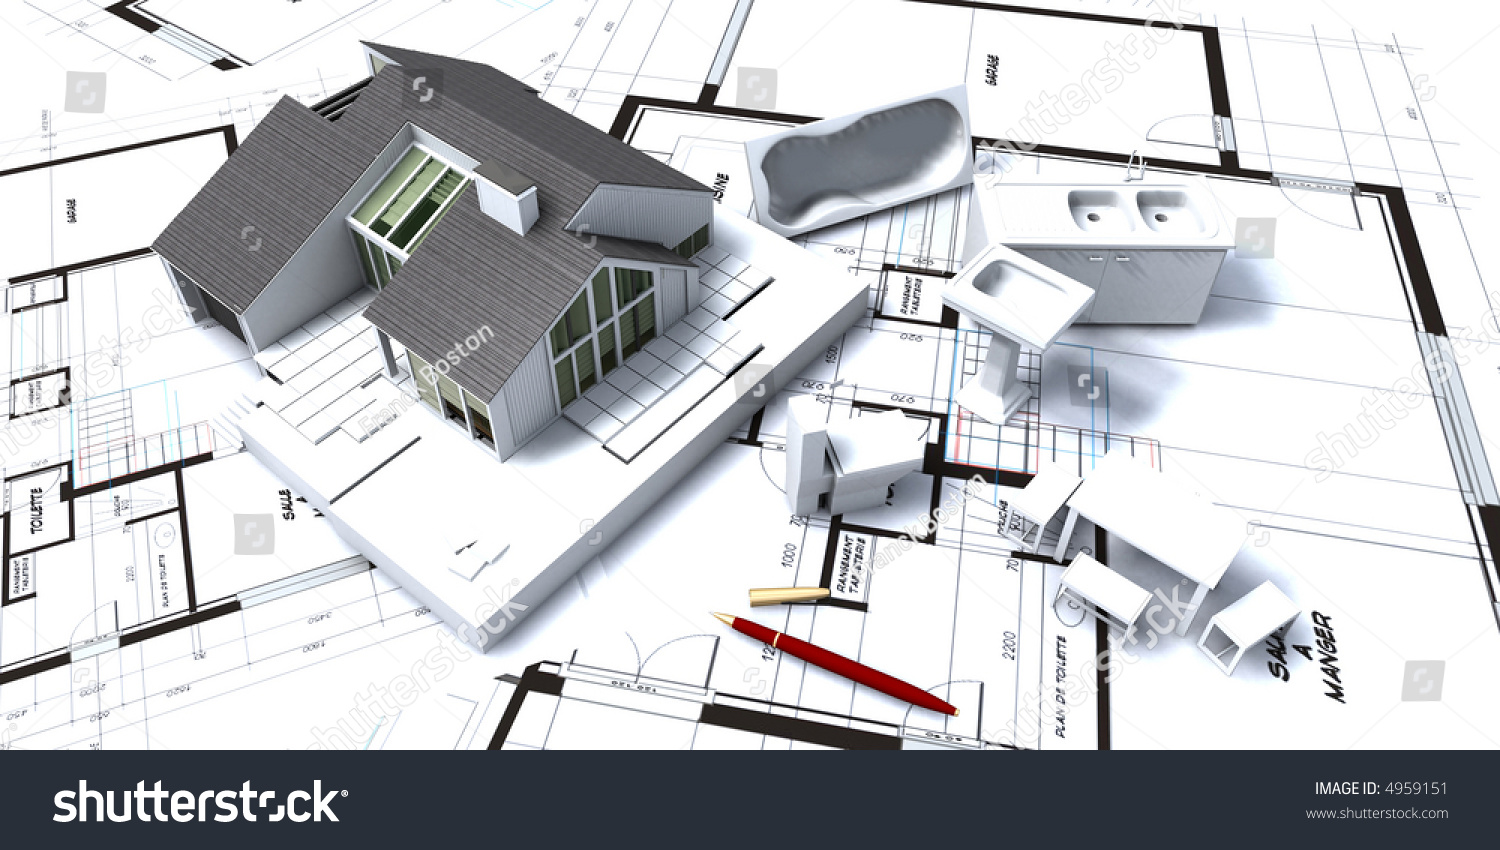 3d Rendering Of Residential House On Architect S Blueprints With Miniature Furniture And Home Appliances